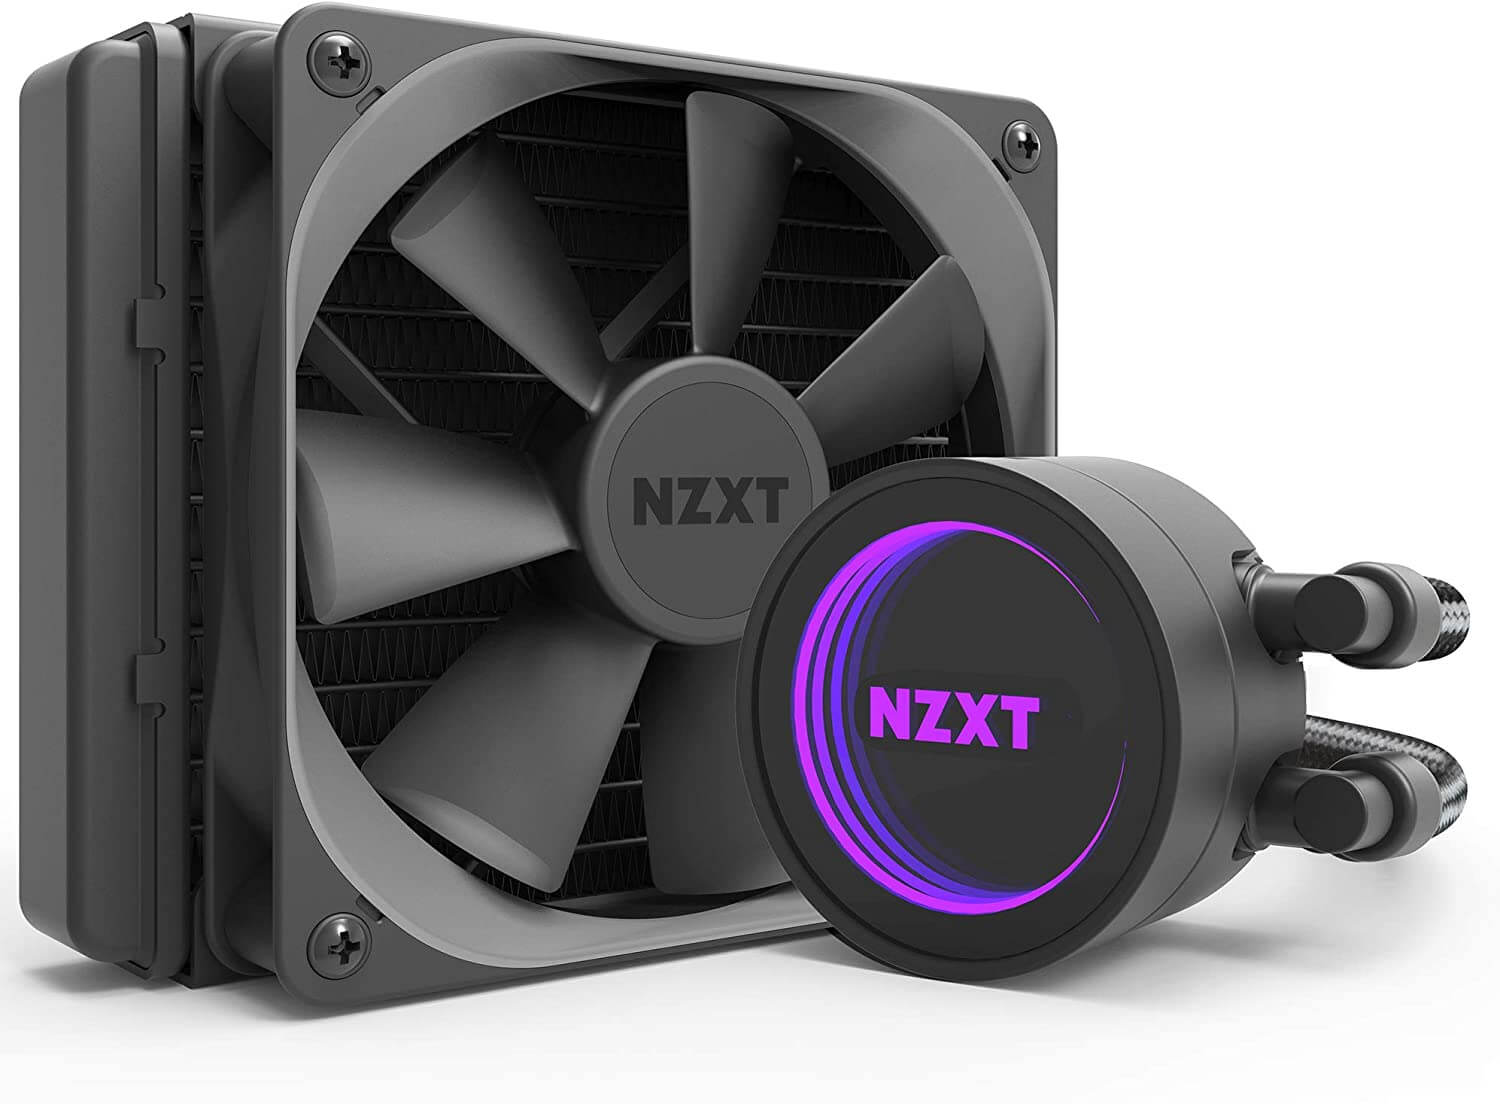 NZXT Kraken CPU Liquid Cooler